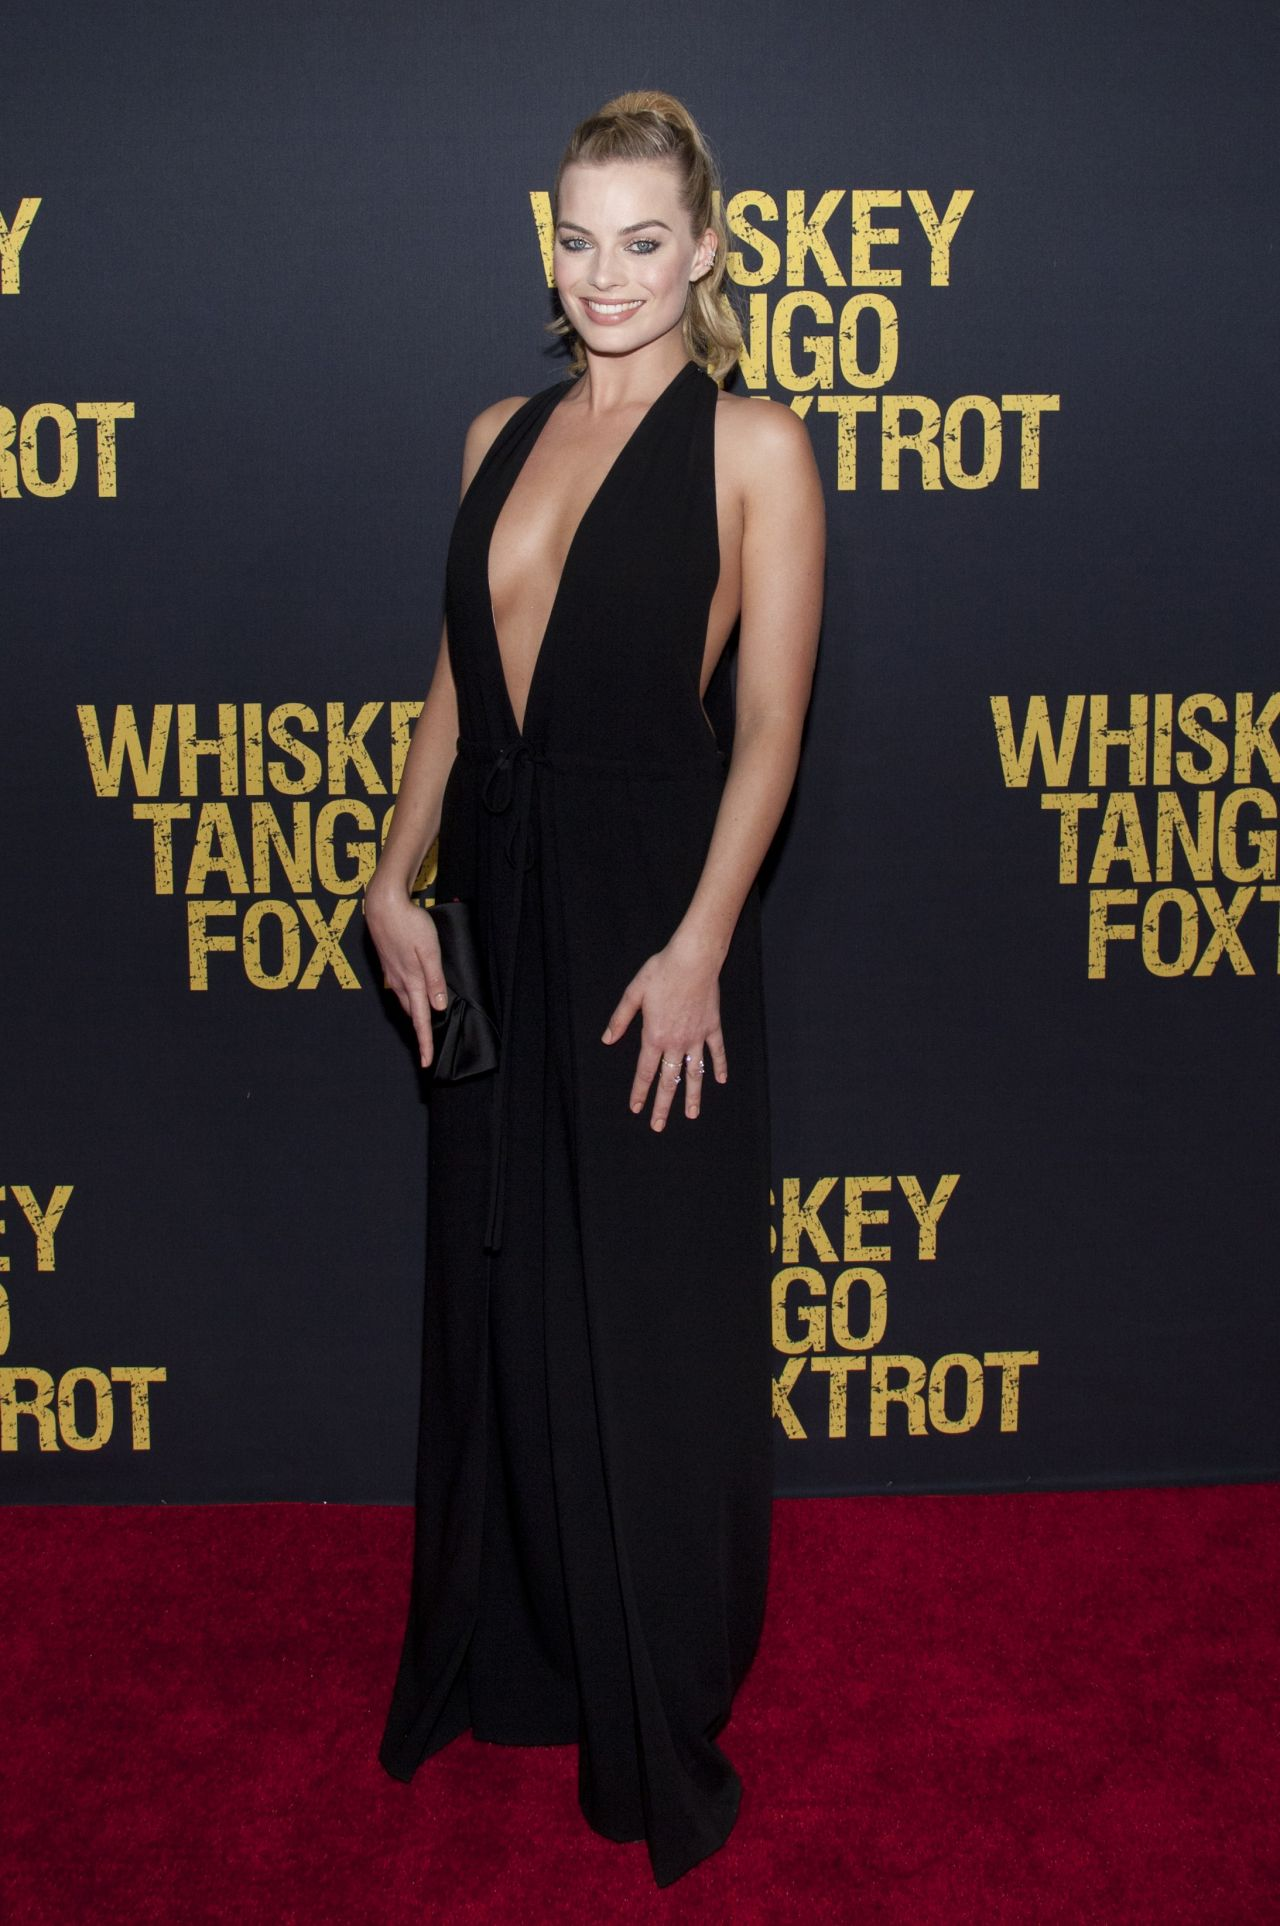 margot-robbie-whiskey-tango-foxtrot-premiere-in-new-york-city-ny-19